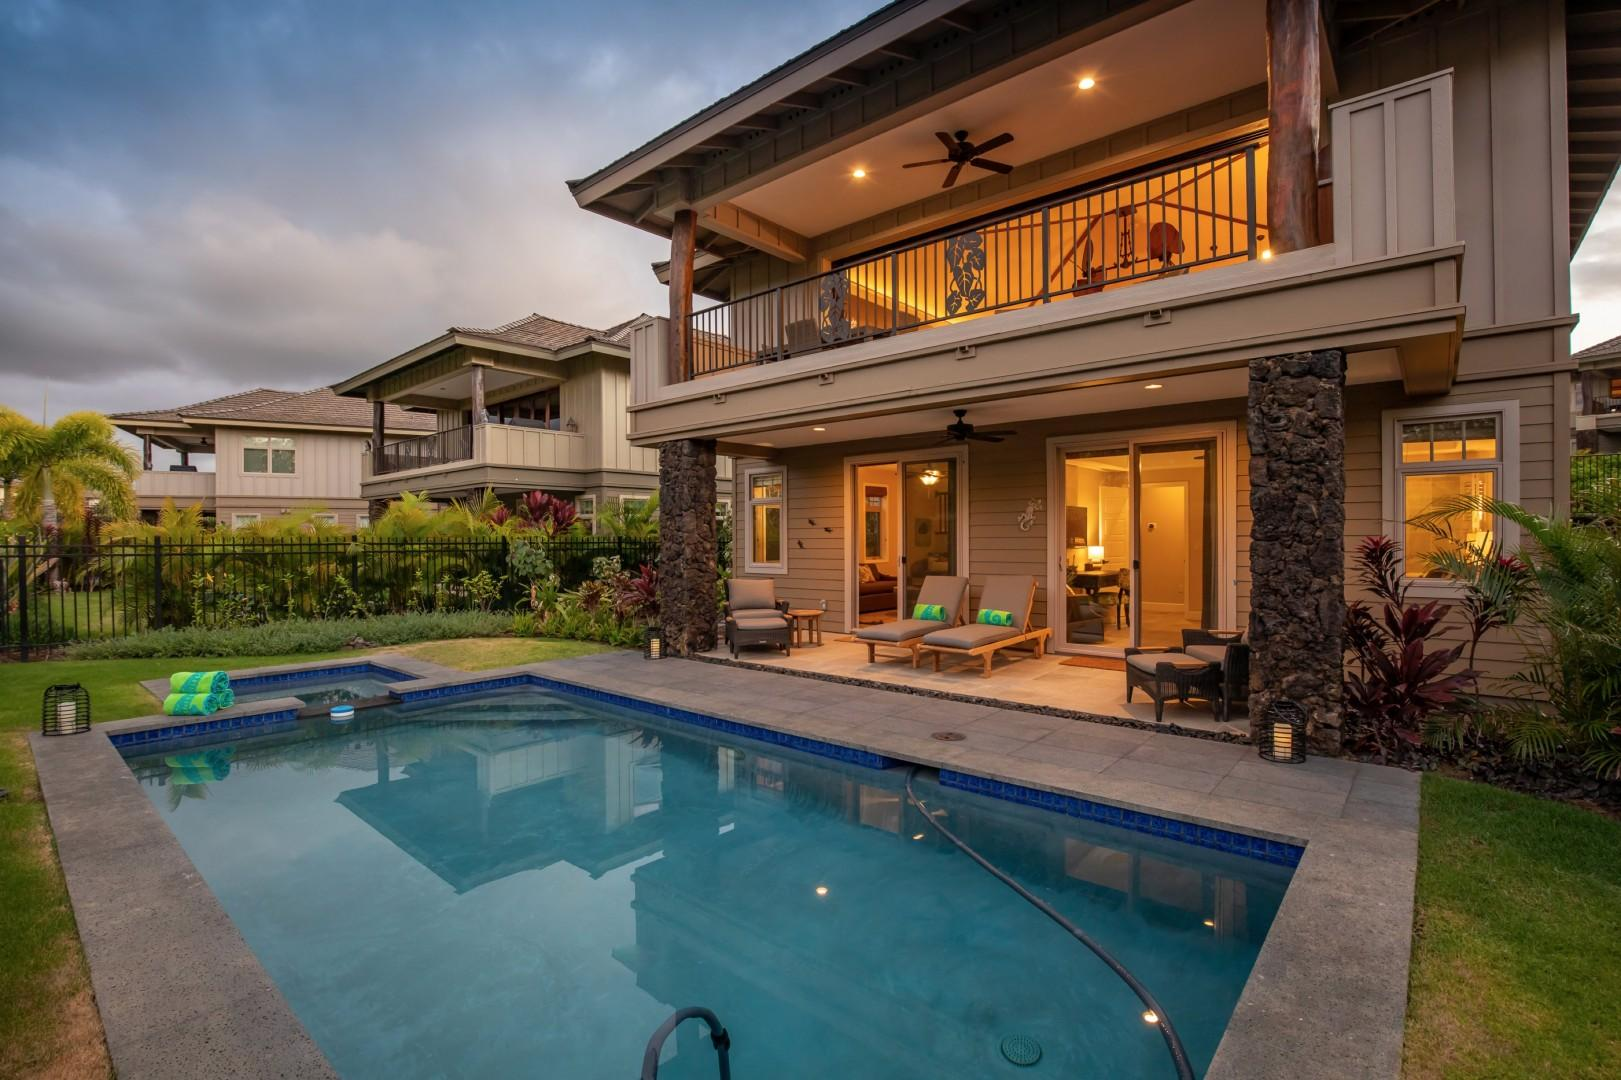 Pool and home at twilight.